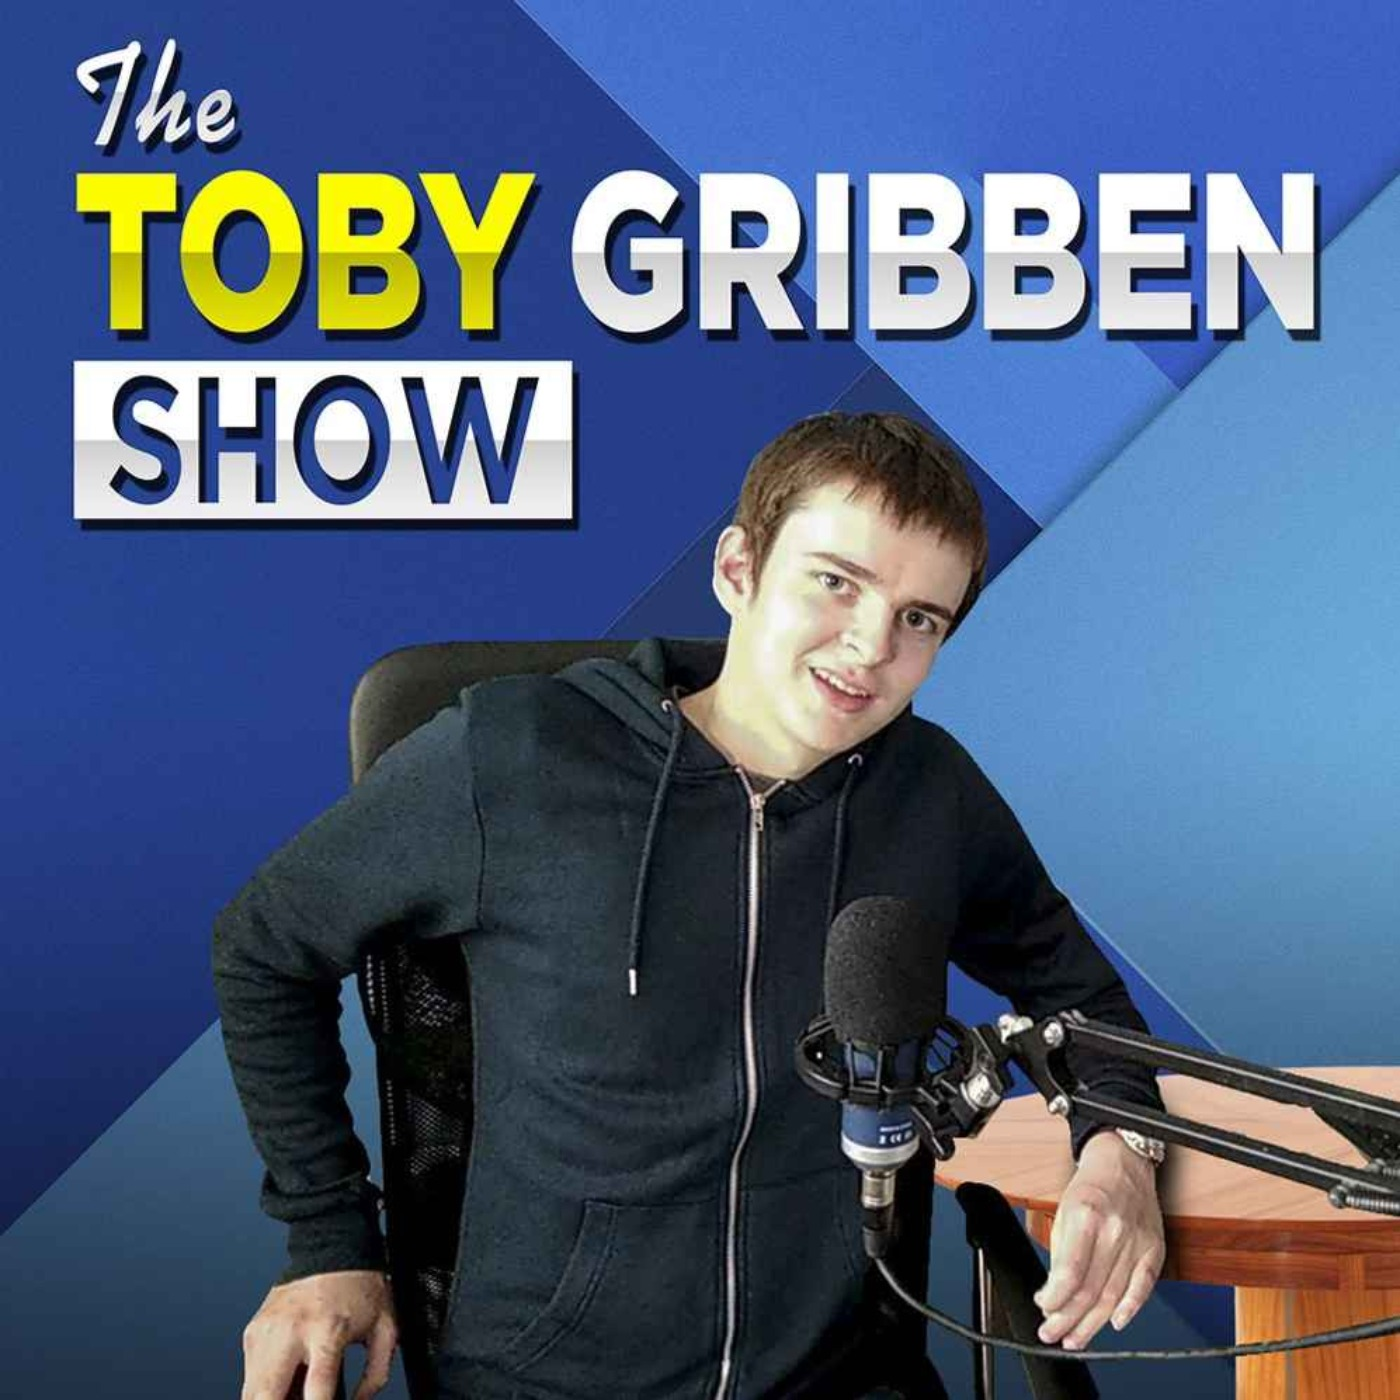 The Toby Gribben Show - Hosted by Toby Gribben